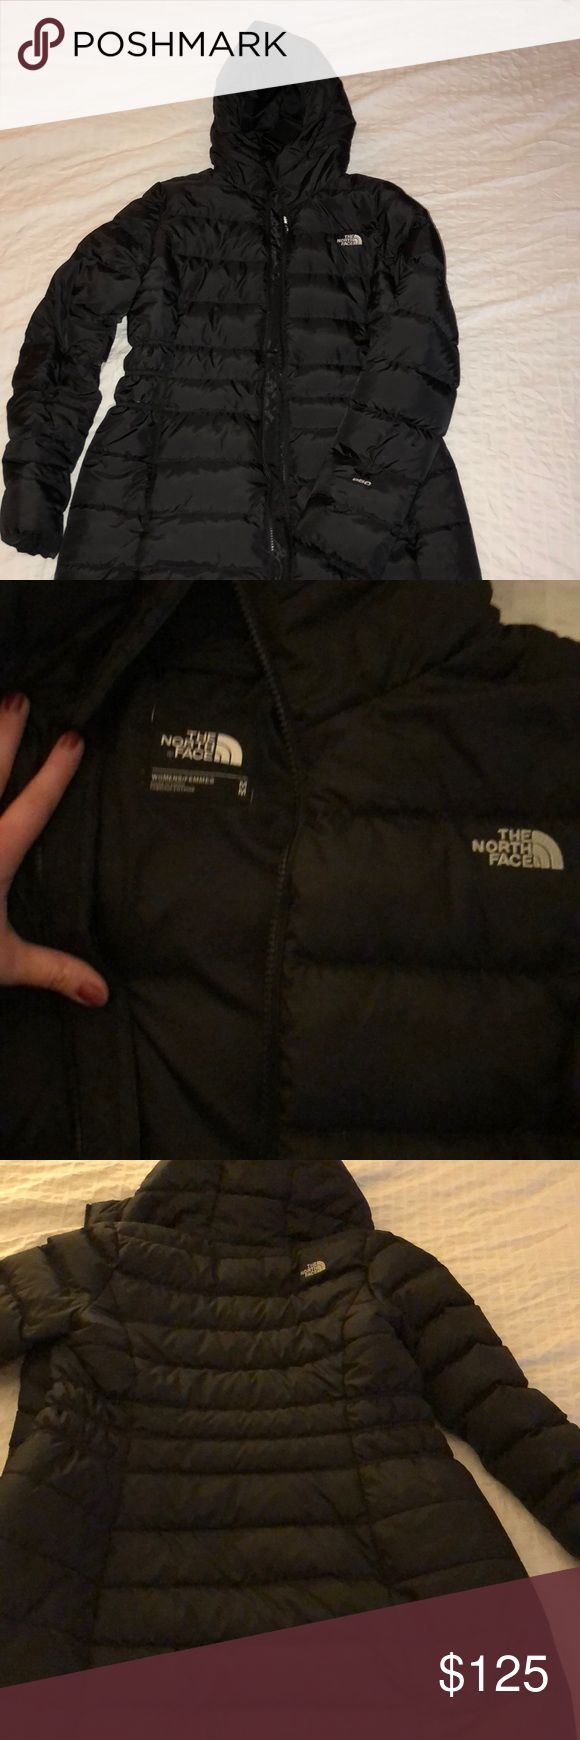 North Face Women's Jacket Women's North Face Gotham Parka II. So warm and cozy. Perfect for those cold winter days (and nights!). This is a size medium. I'm a little bustier than the medium allows, otherwise I would be keeping this! The North Face Jackets & Coats